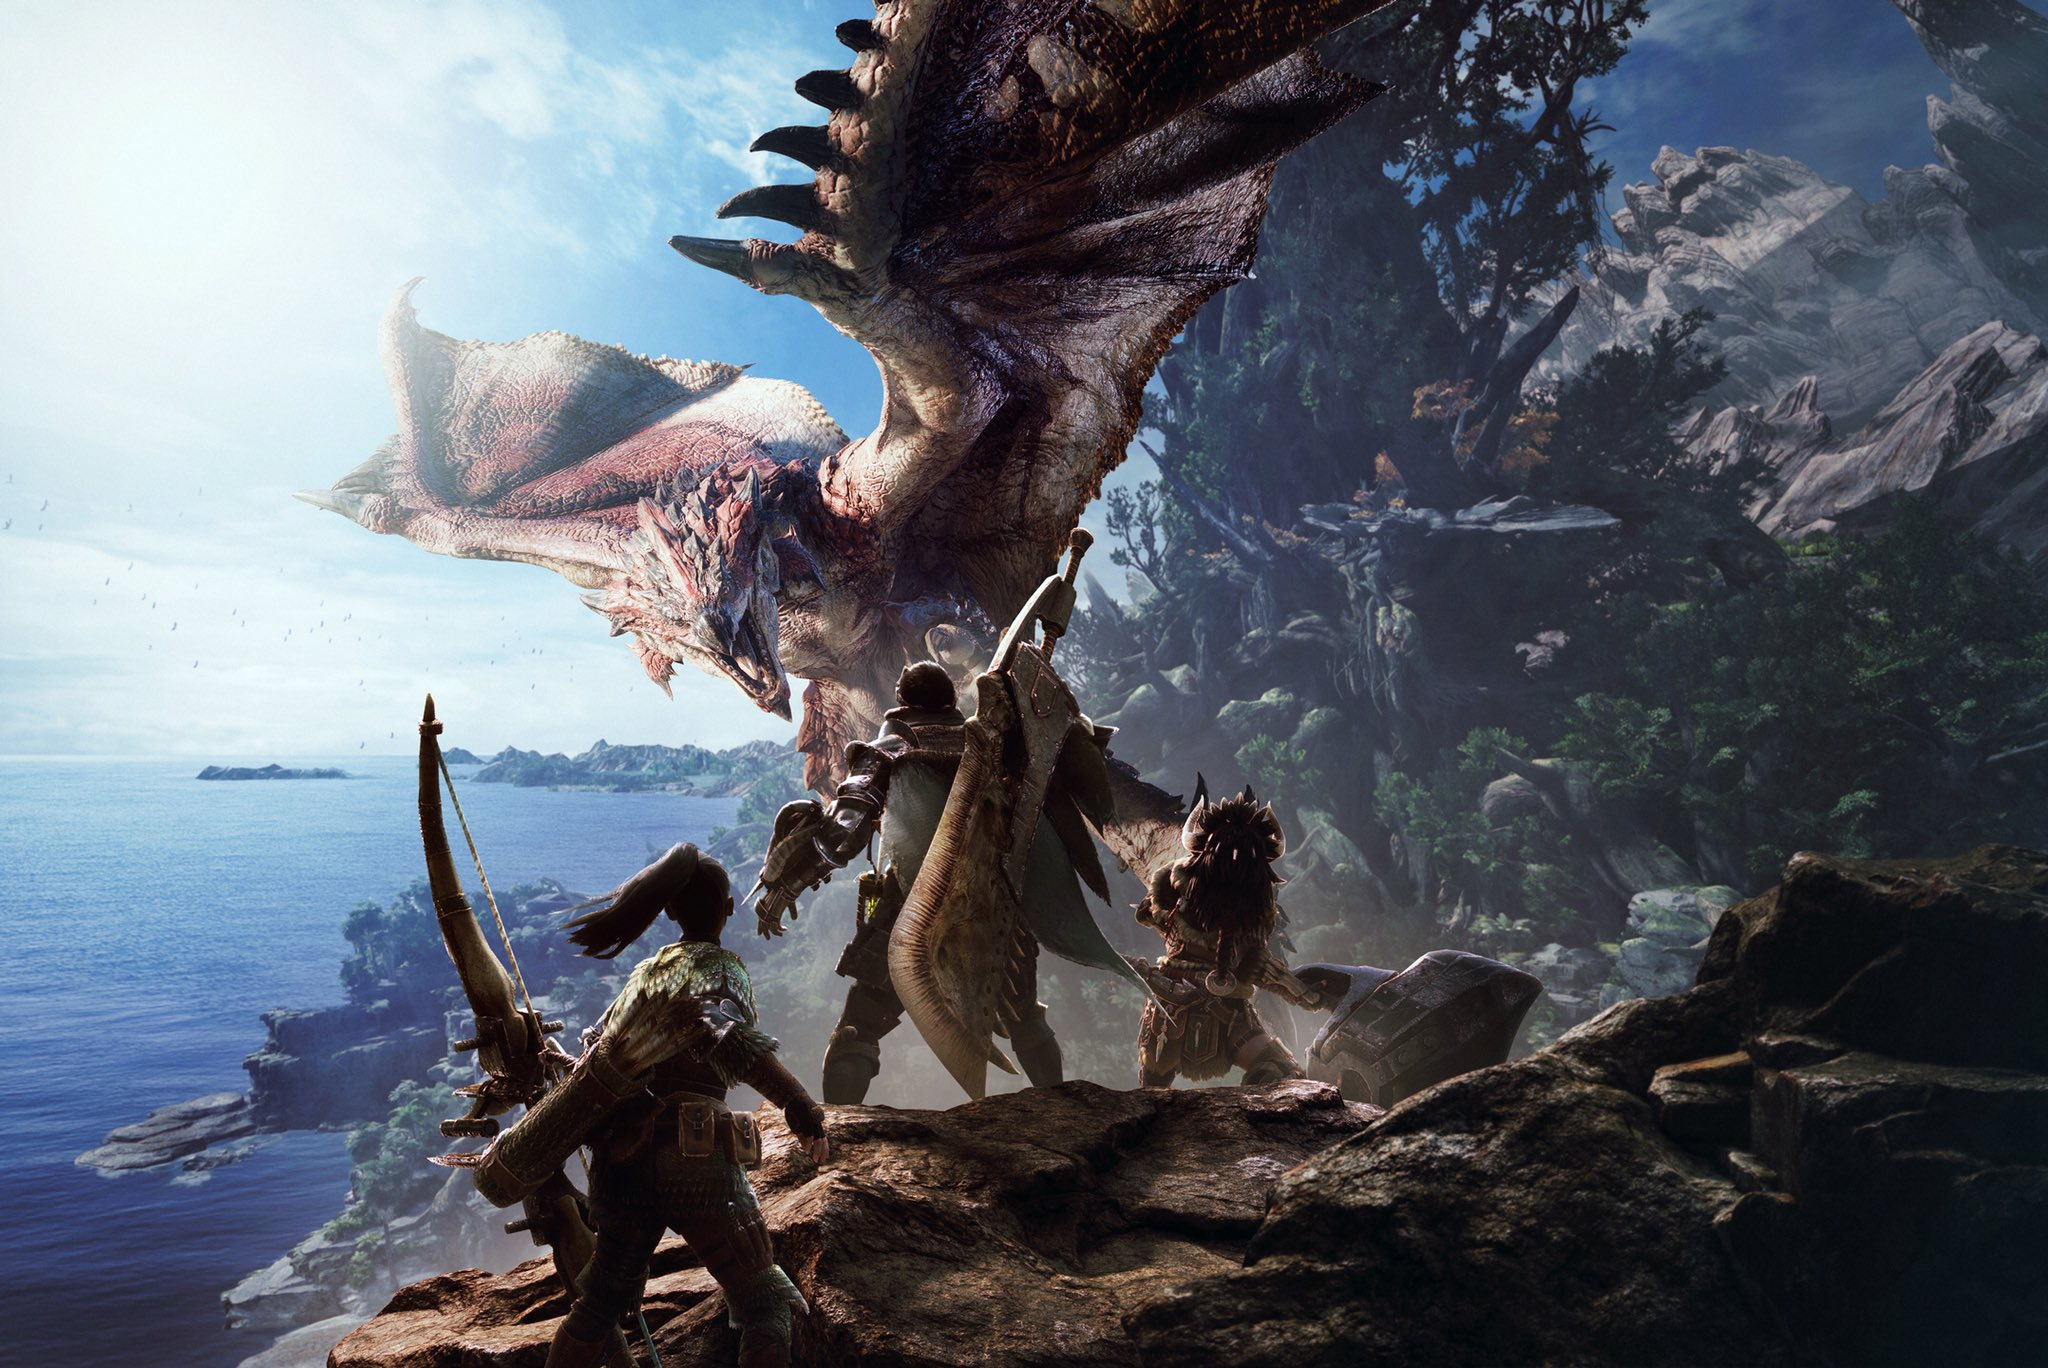 Capcom announces Monster Hunter World, confirmed for the PC